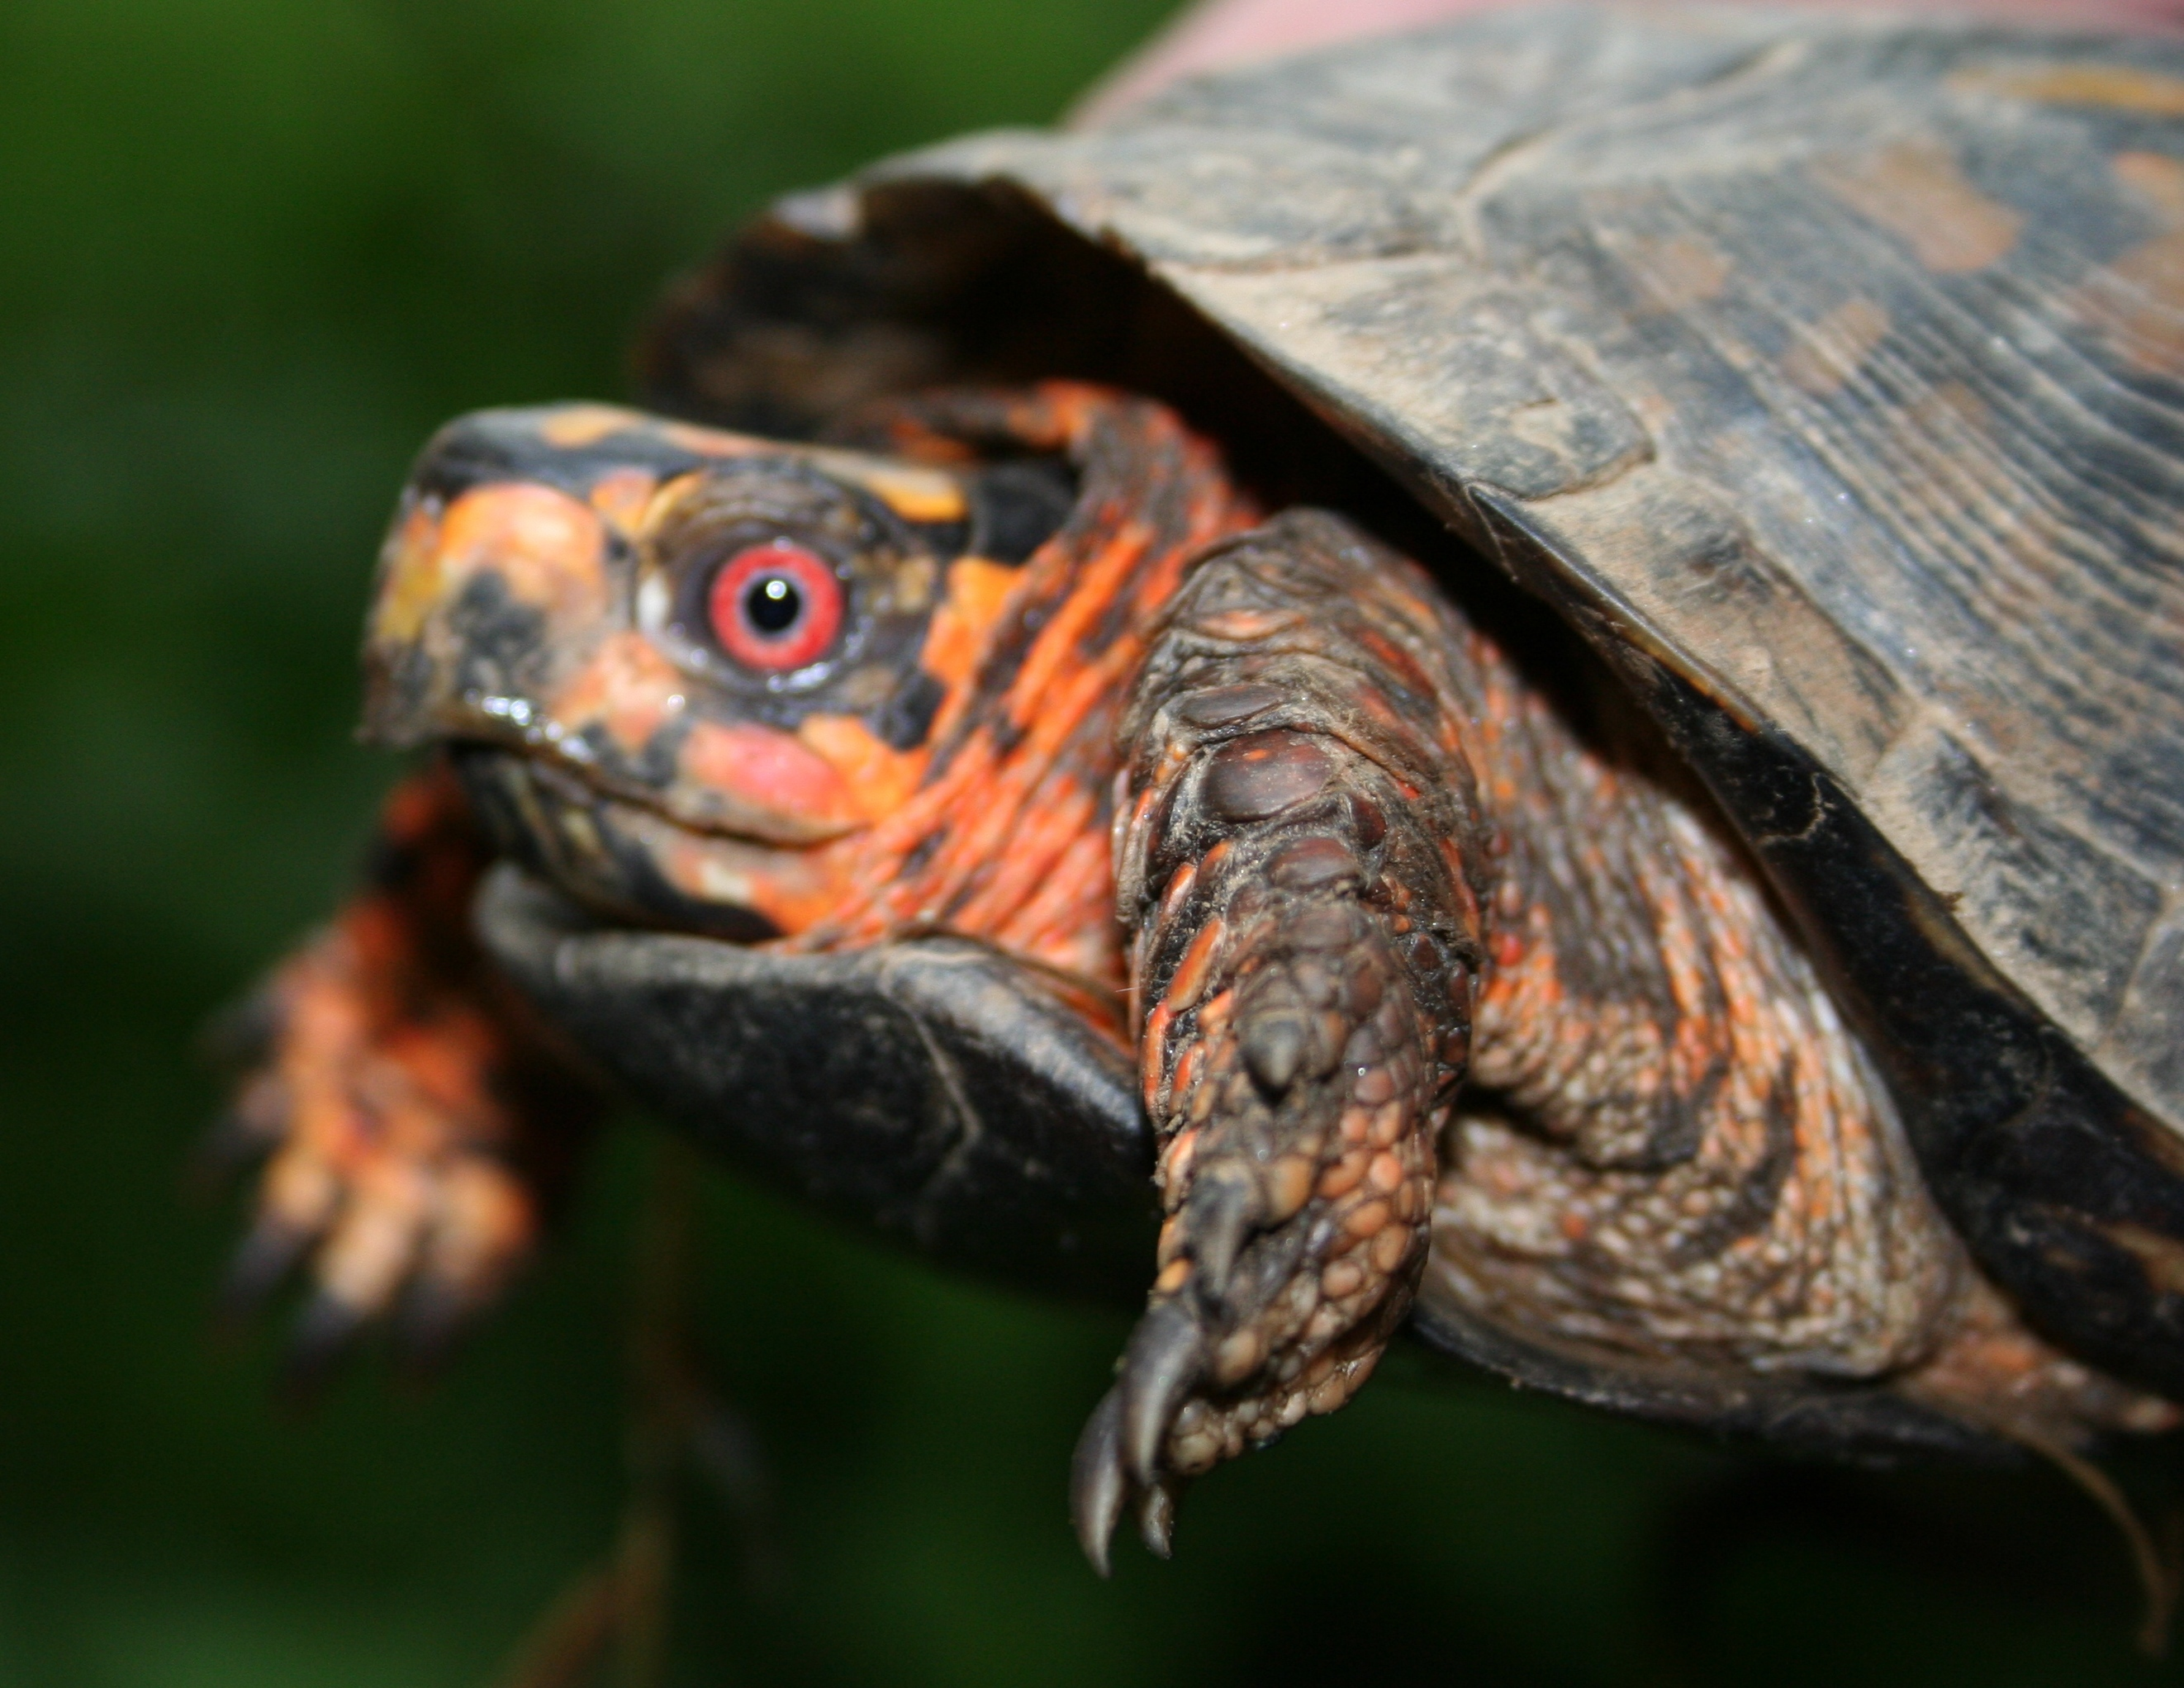 Image of eastern box turtle